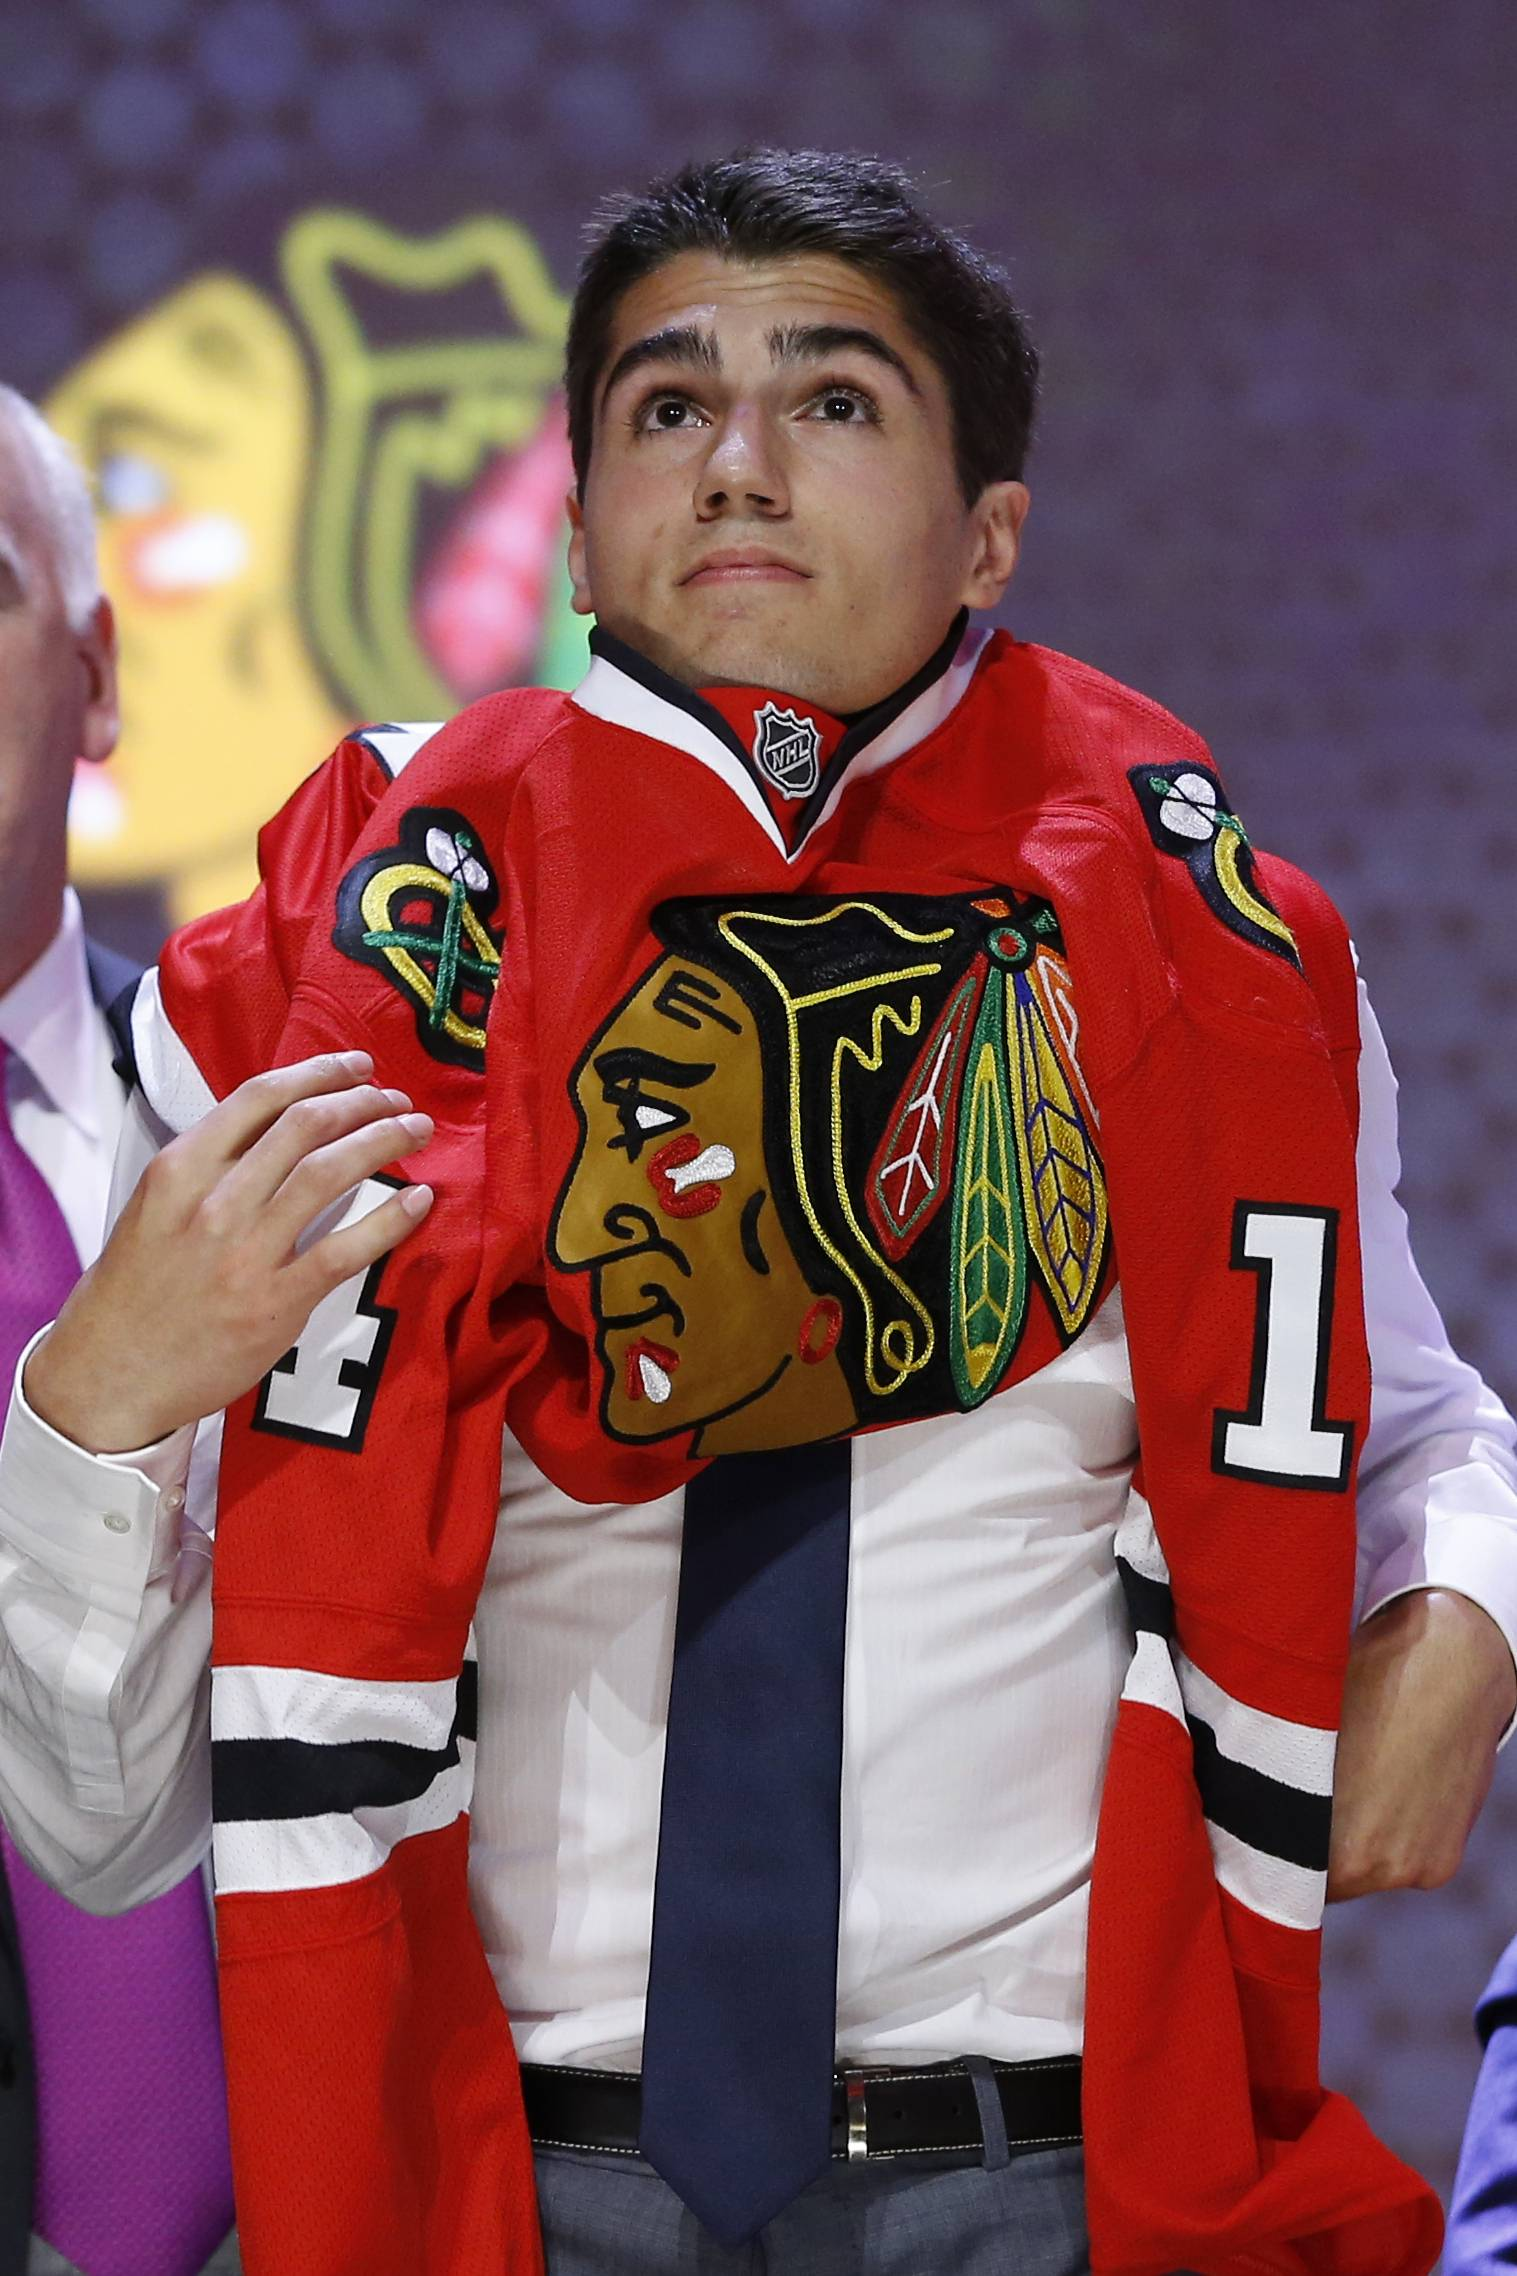 Nick Schmaltz pulls on a Chicago Blackhawks sweater after being chosen 20th overall during the first round of the NHL hockey draft, Friday, June 27, 2014, in Philadelphia. (AP Photo/Matt Slocum)